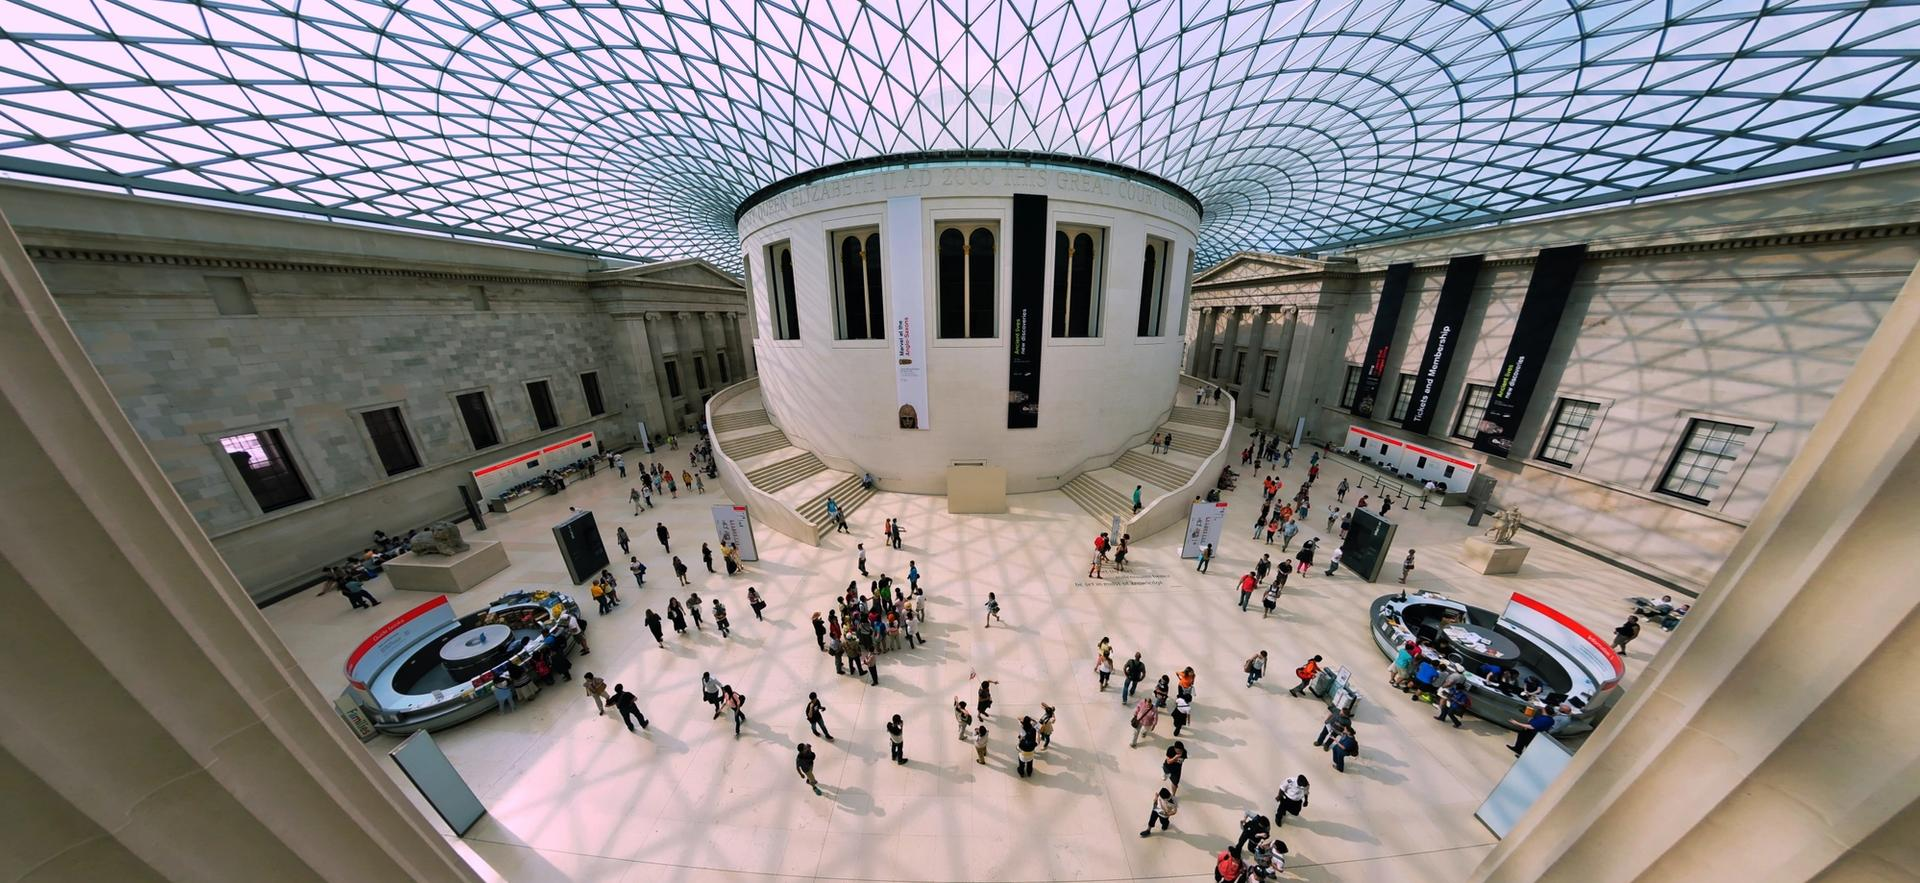 """Official guidance issued by the UK government states that """"indoor entertainment, such as museums, cinemas and children's play areas"""" can open from 17 May Photo: Viktor Forgacs"""